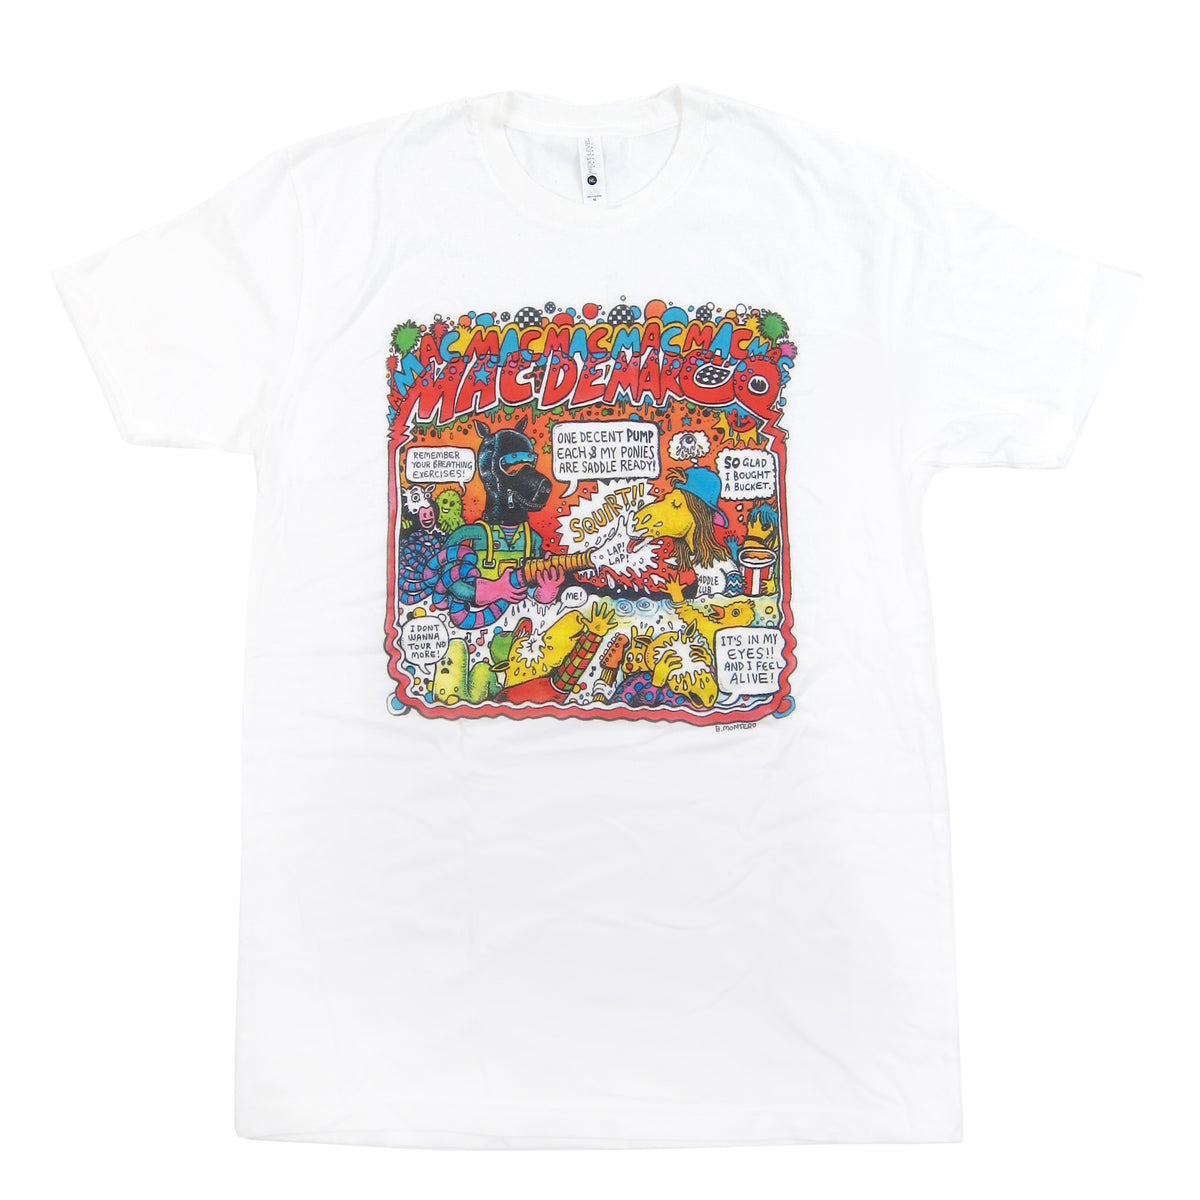 Mac Demarco: Bjenny Montero Shirt